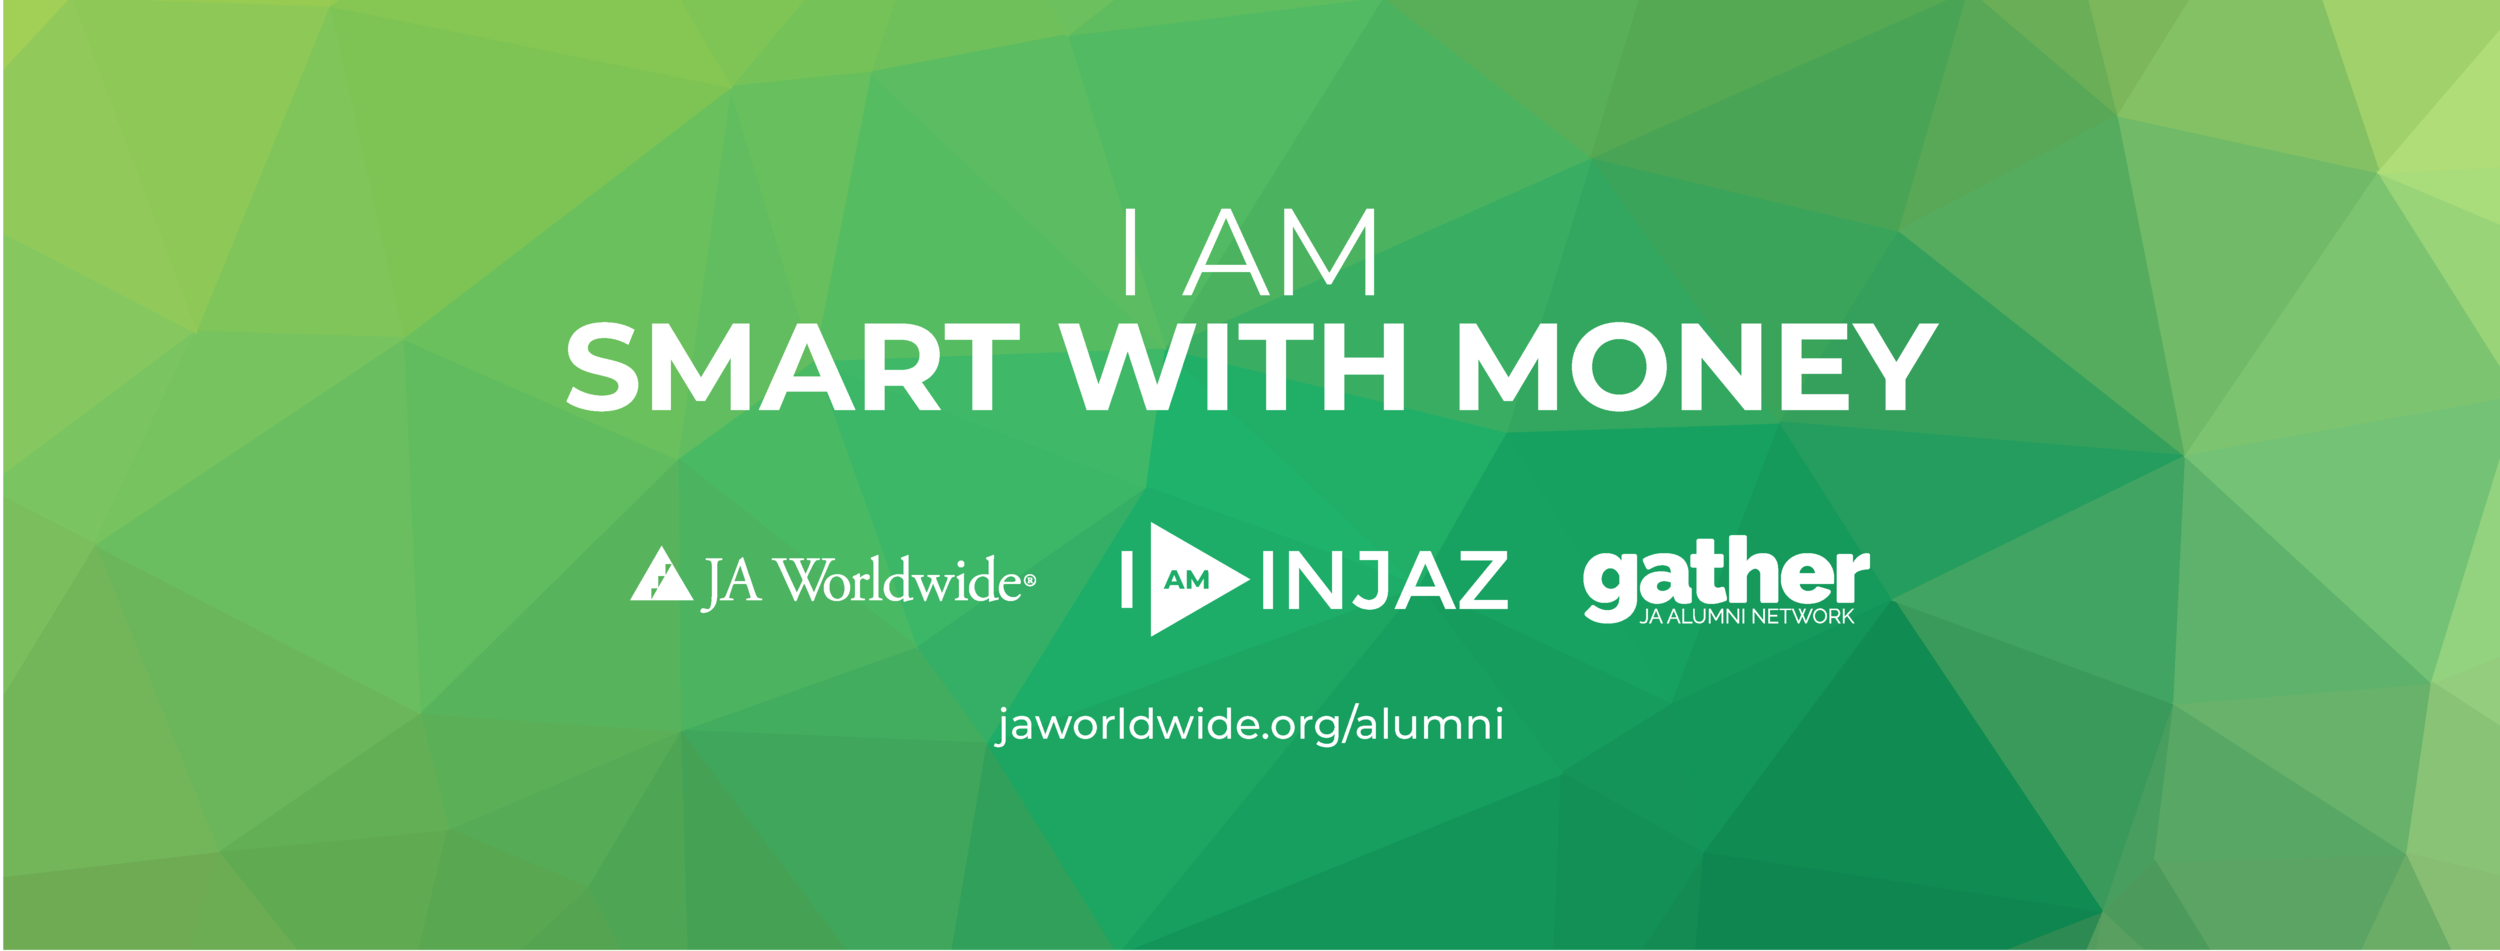 I am smart with money-I am INJAZ-Facebook banner.png